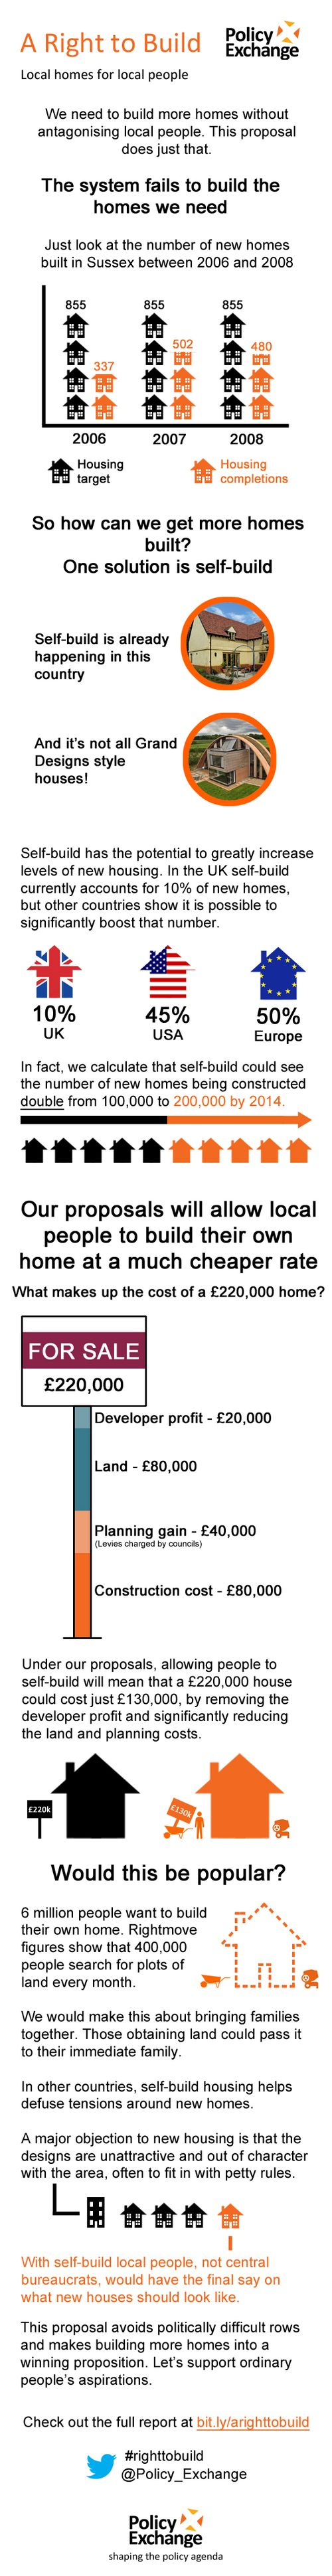 A Right to Build infographic